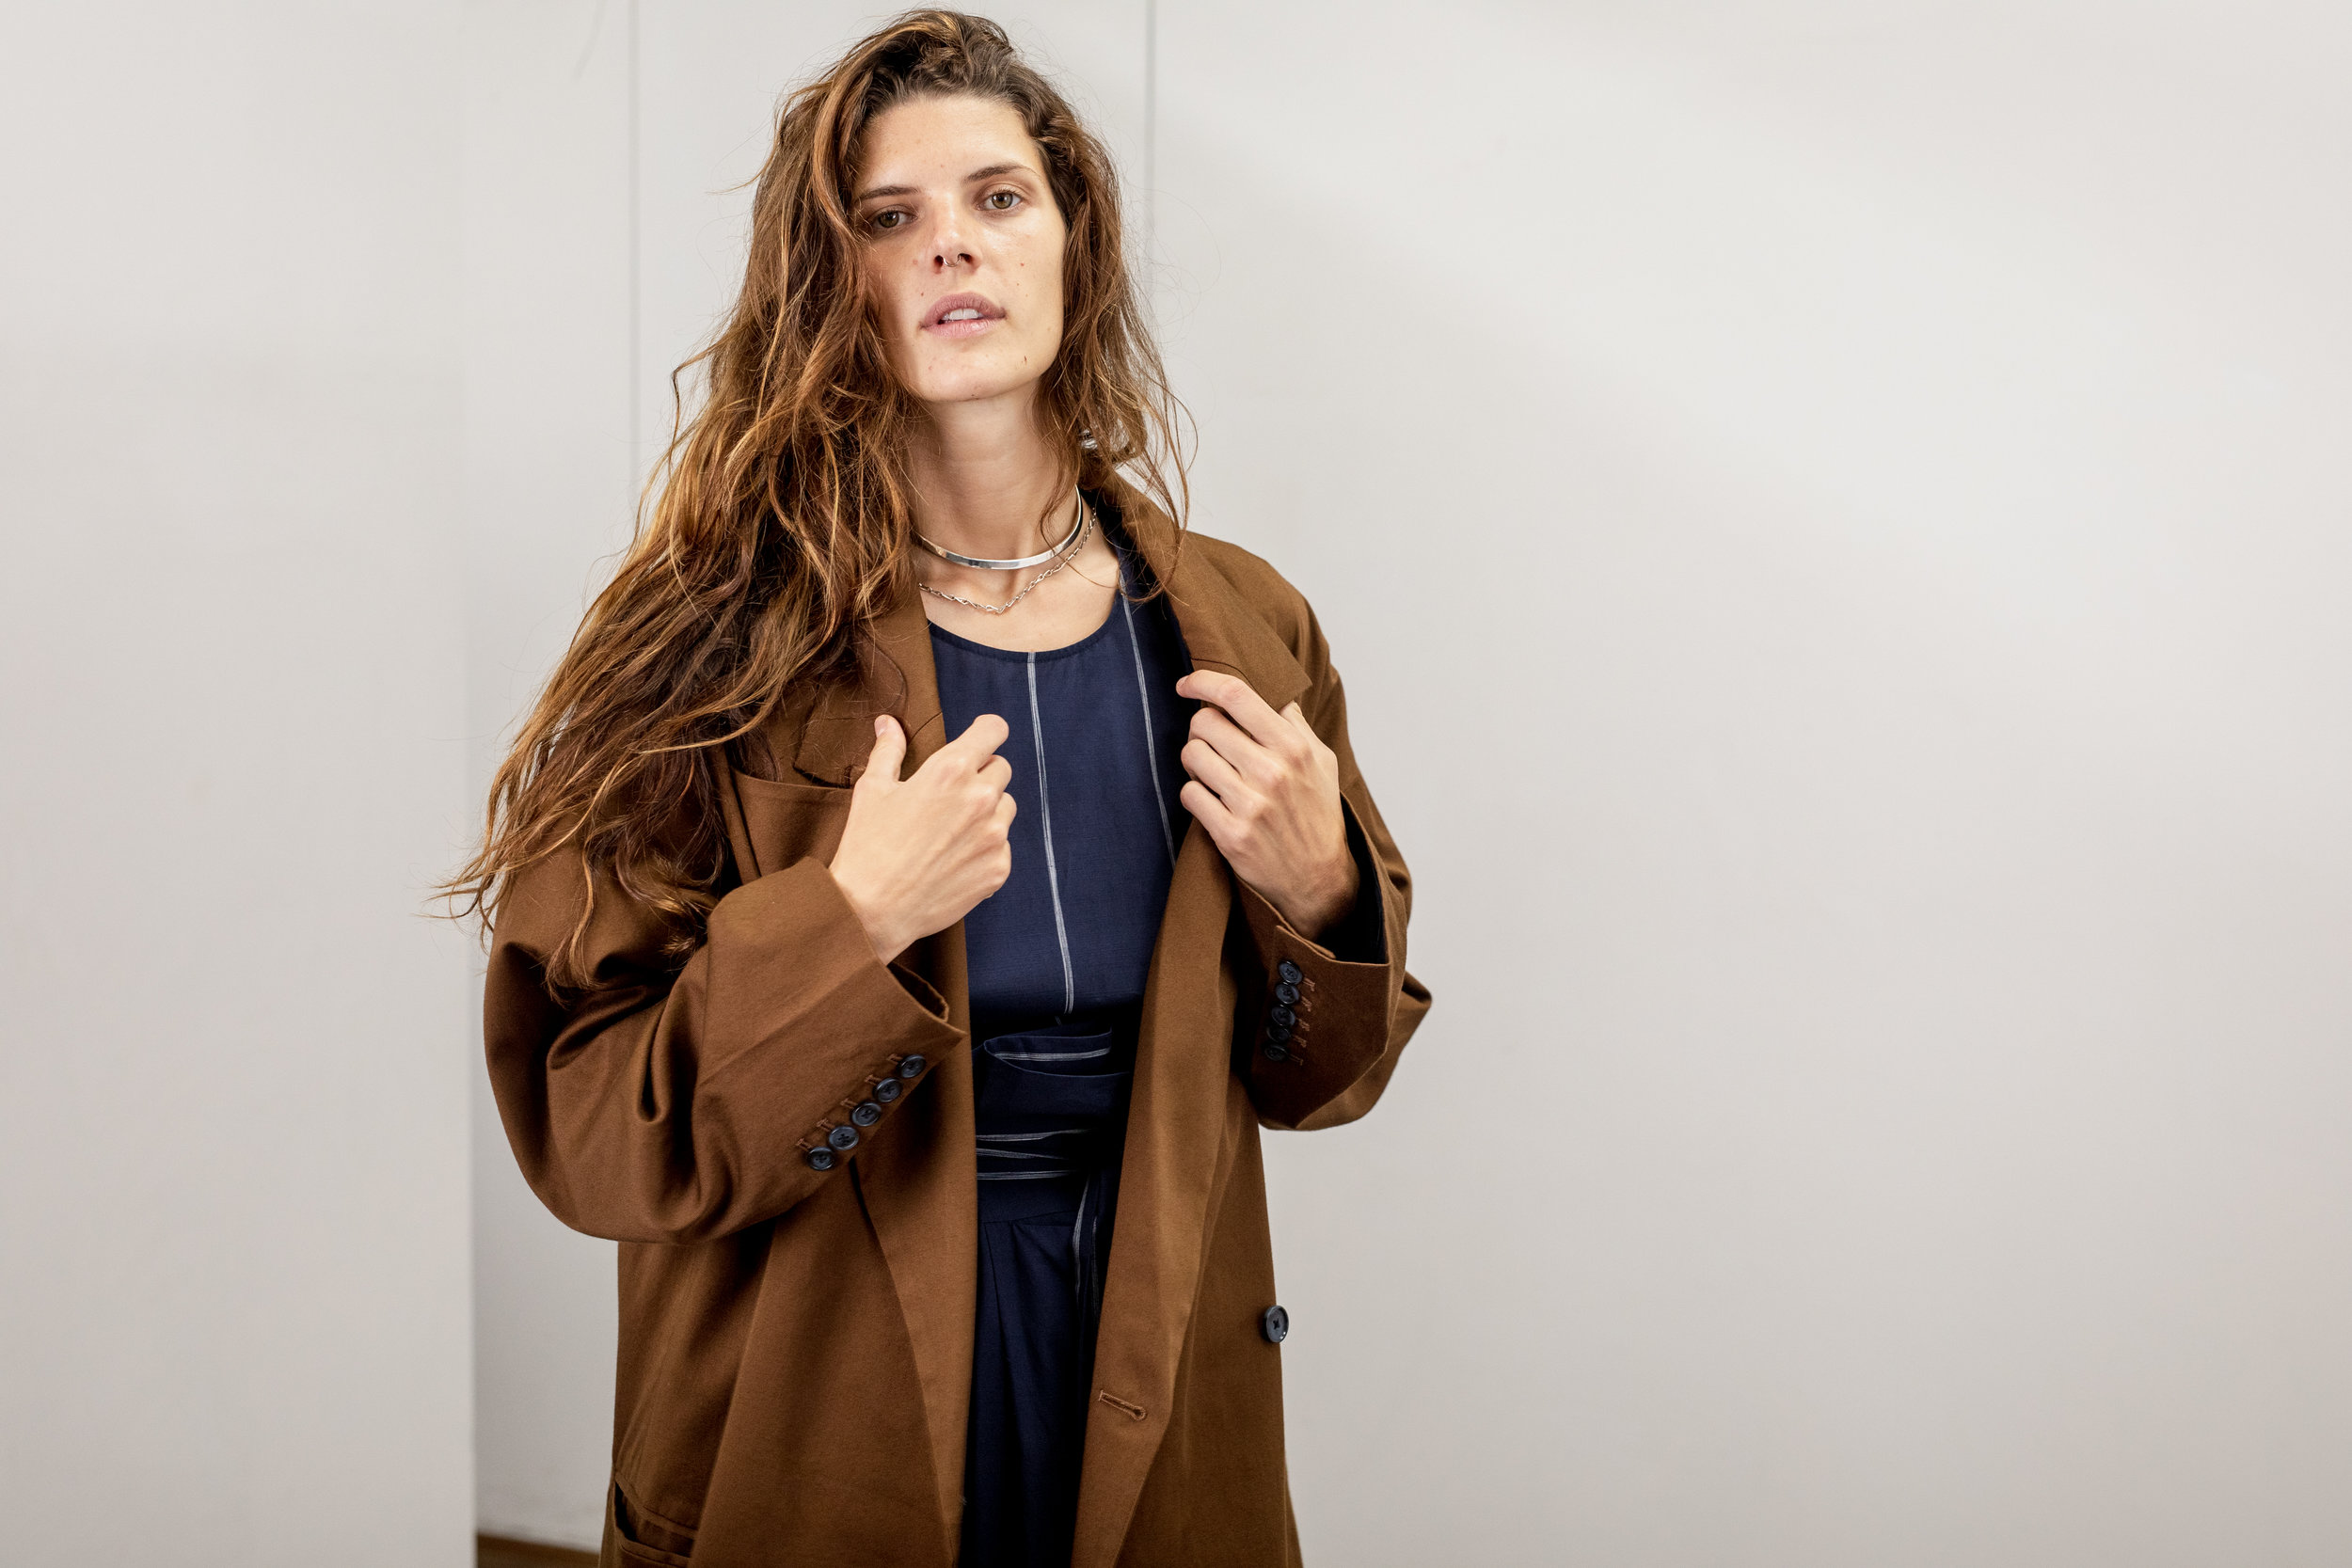 roucha-2019-lookbook-Final-5000px-19.jpg